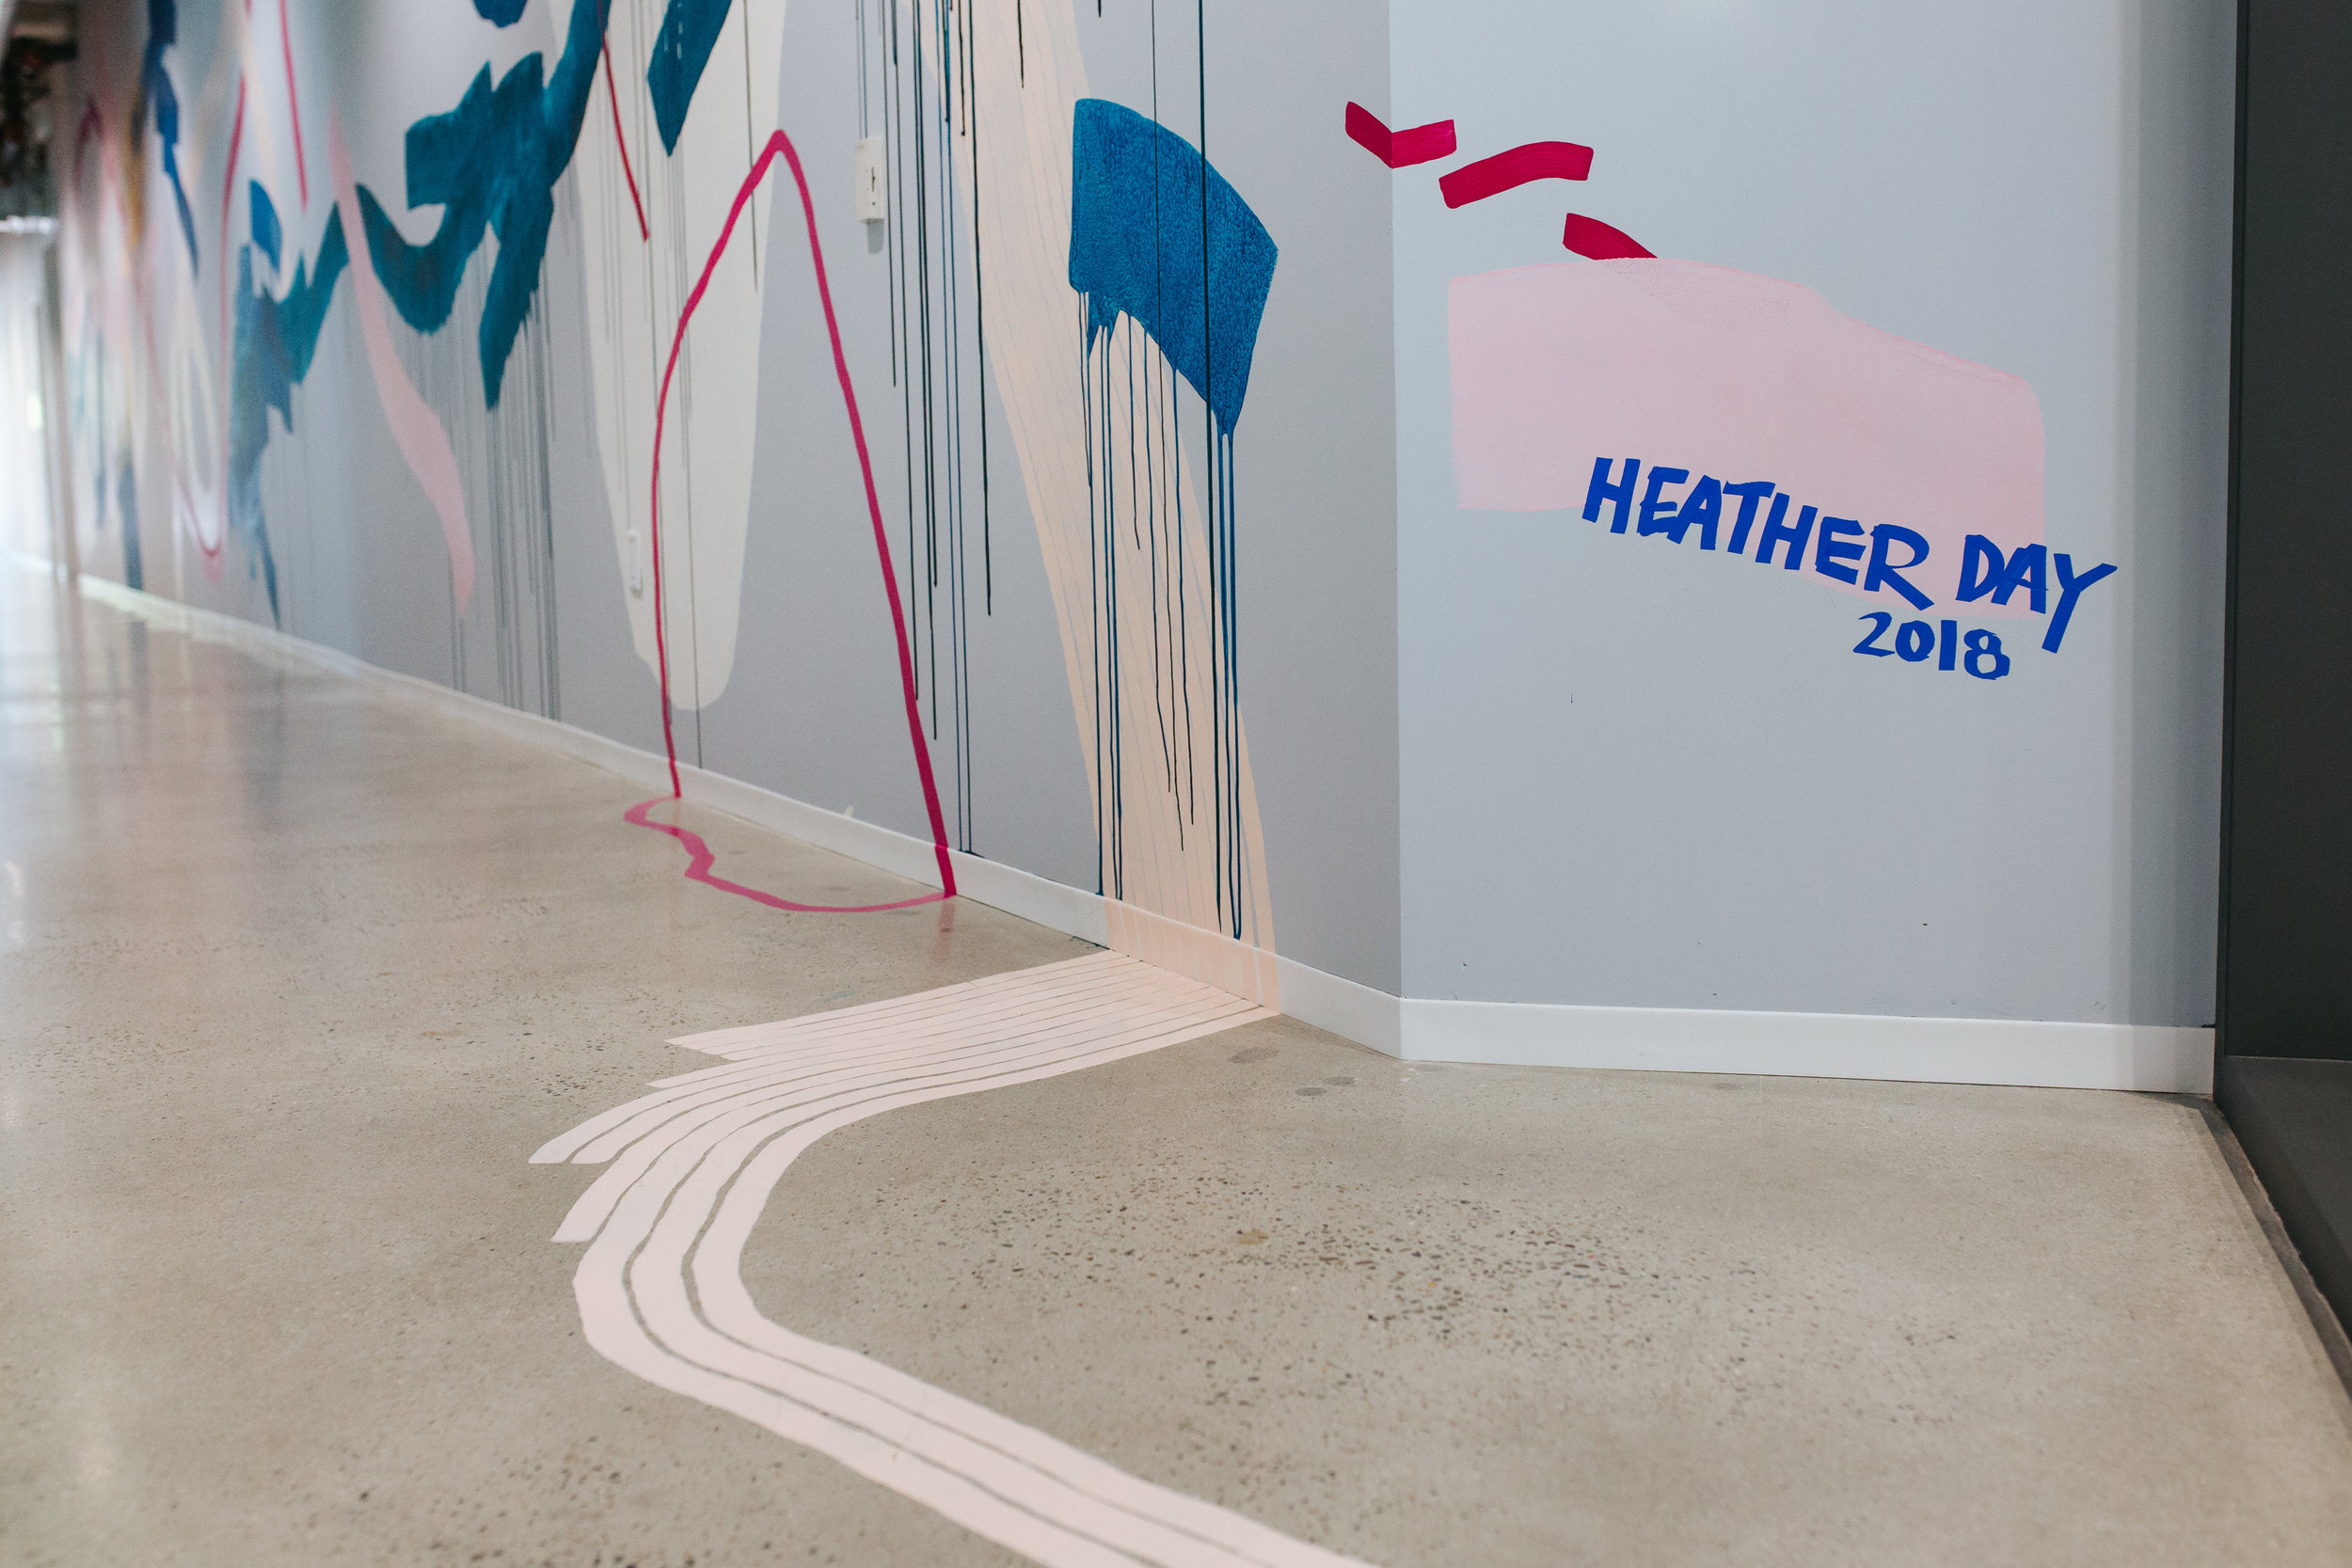 Heather Day's signature on her YouTube Mural in San Bruno painted by Heather Day in 2018